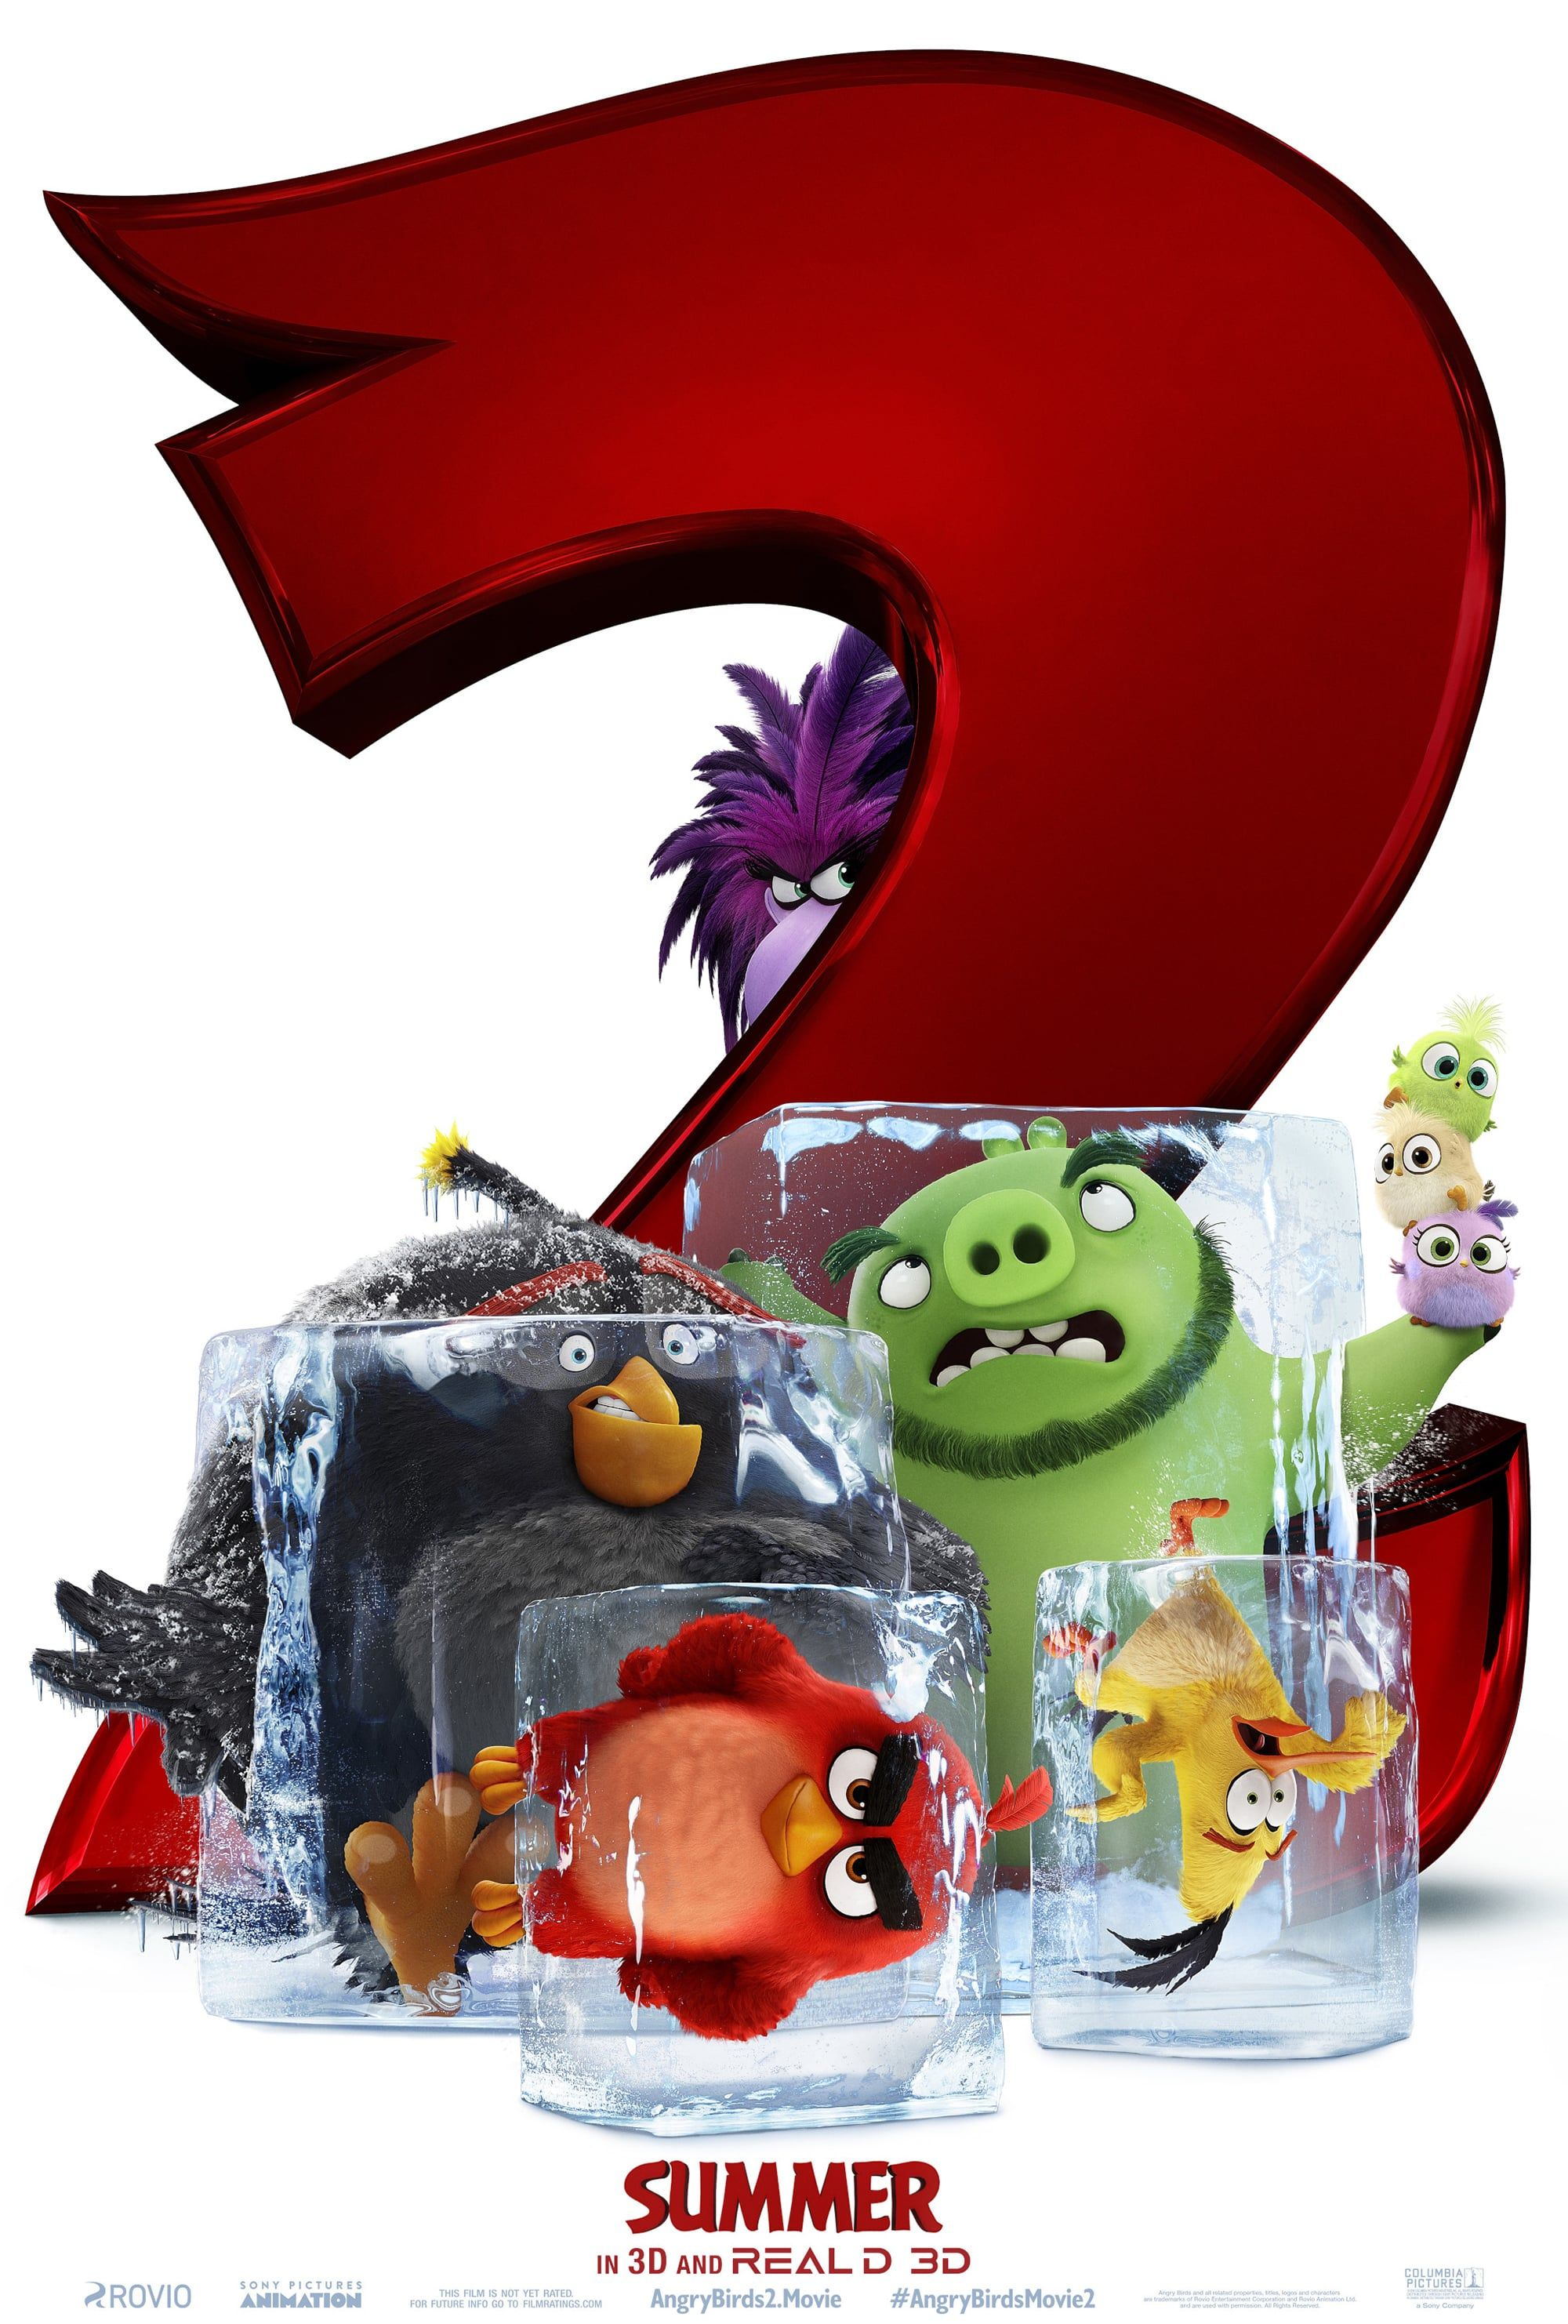 Hd 1080 The Angry Birds Movie 2 42 Film Complet Dublat In Romana The Ang Angry Birds Kartun Hiburan